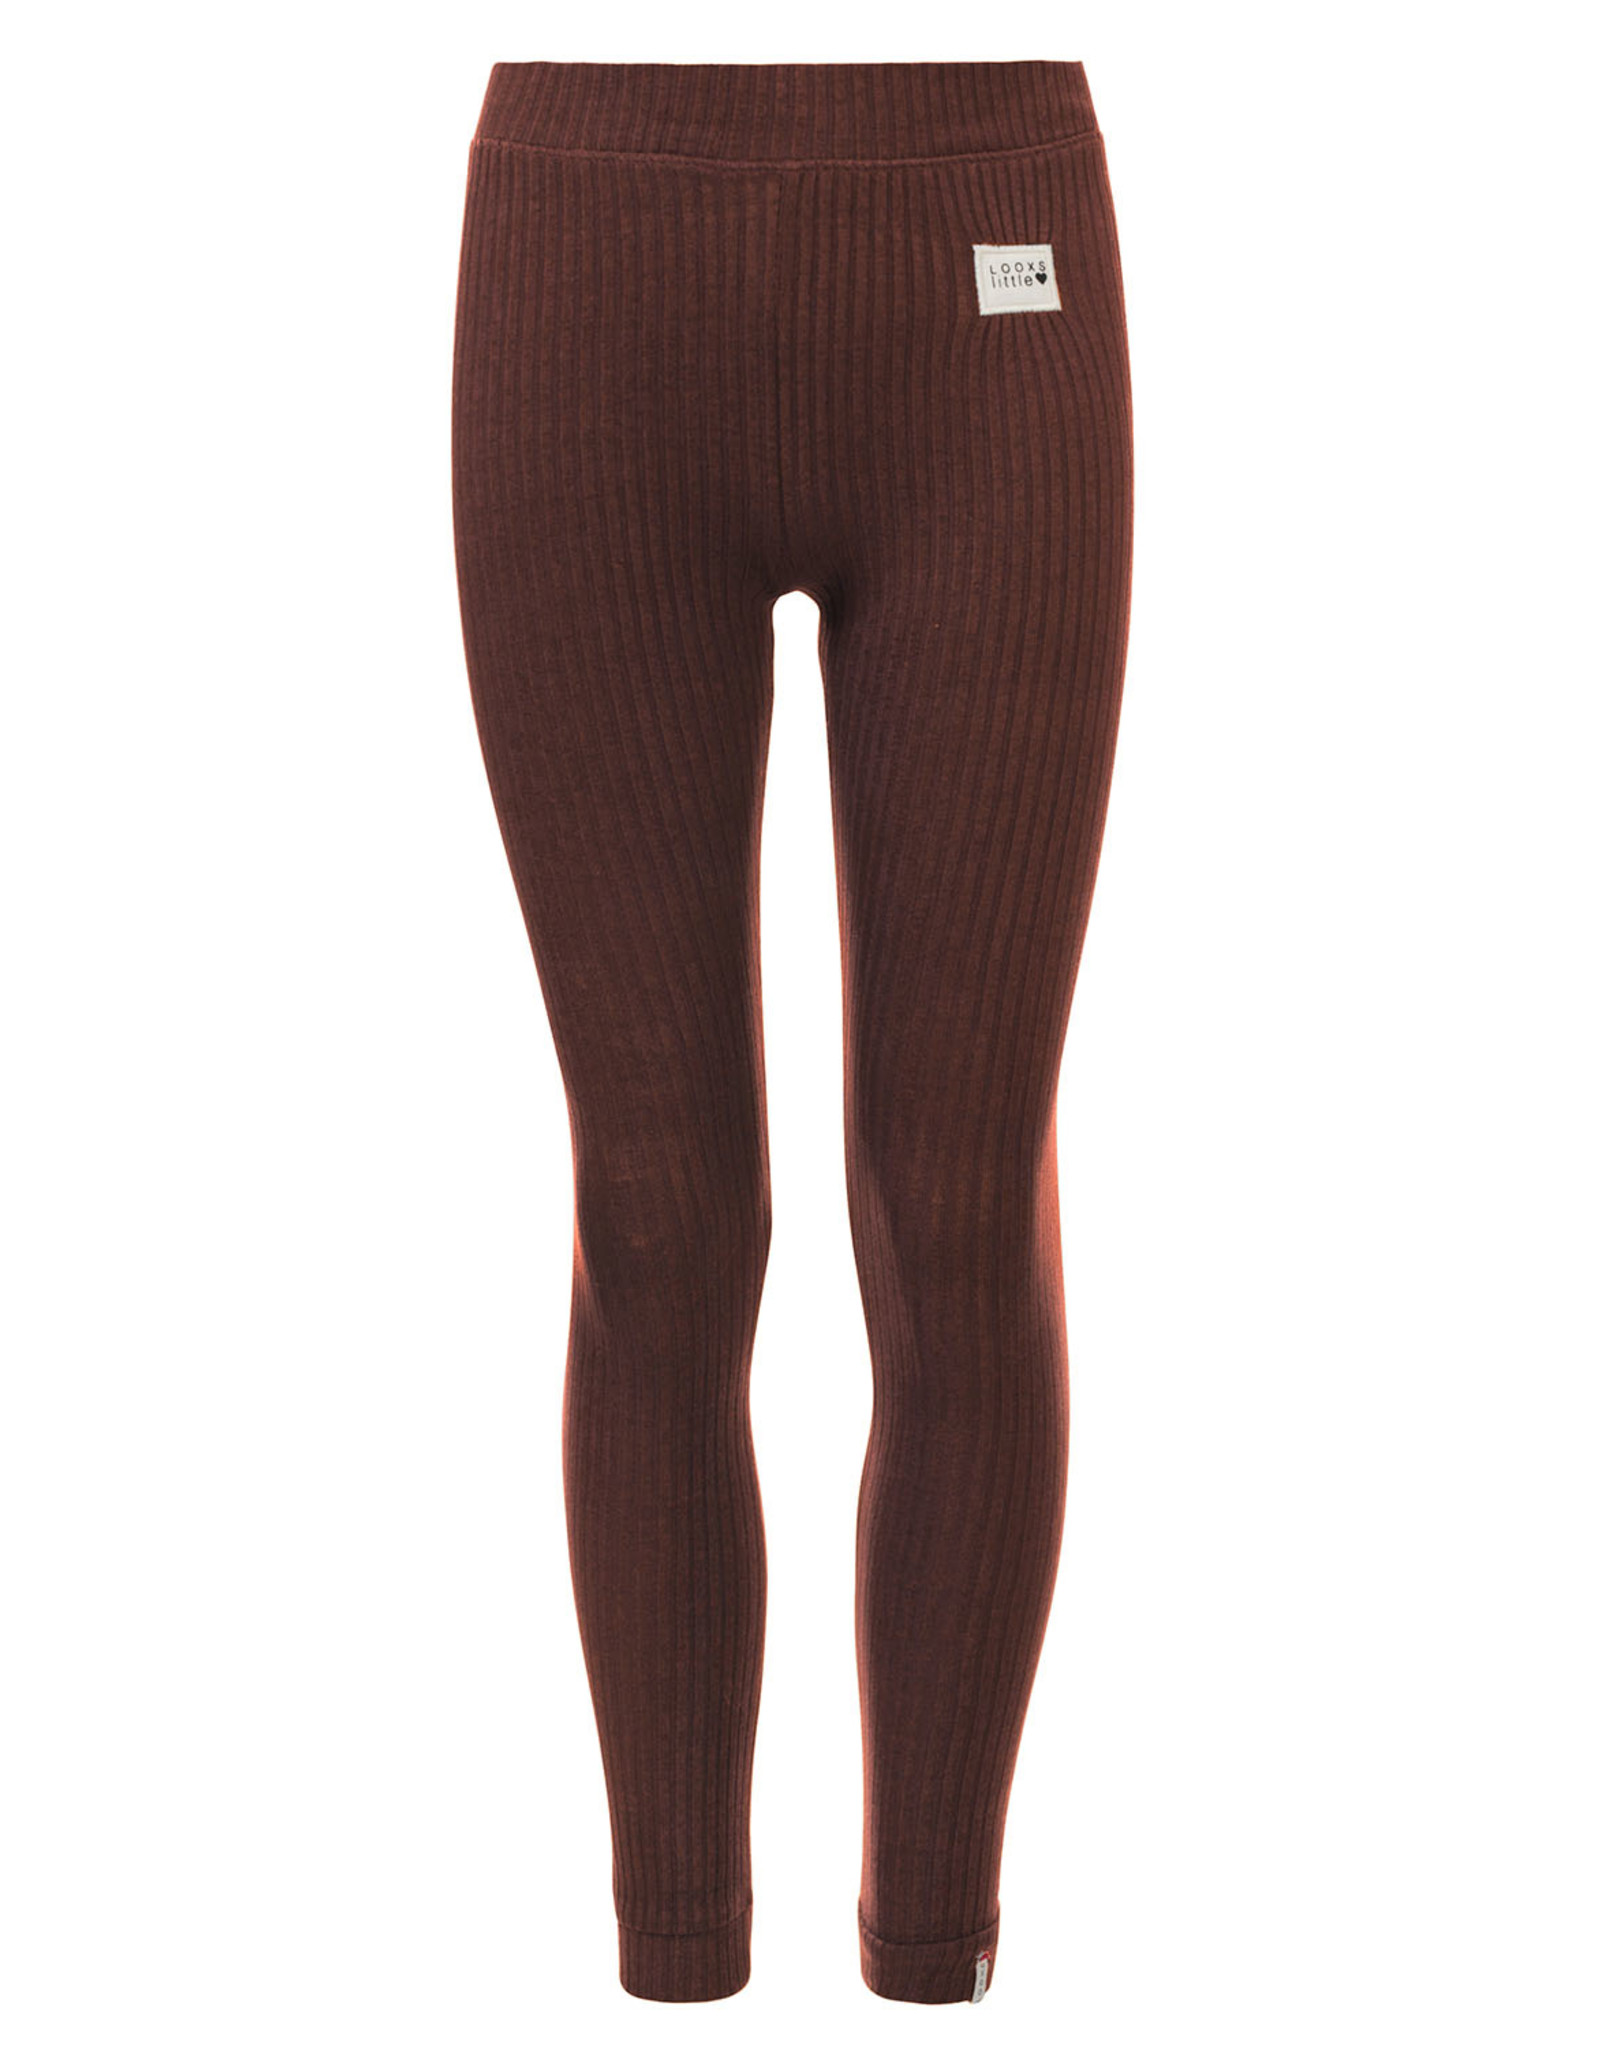 LOOXS Little leggings Cacao